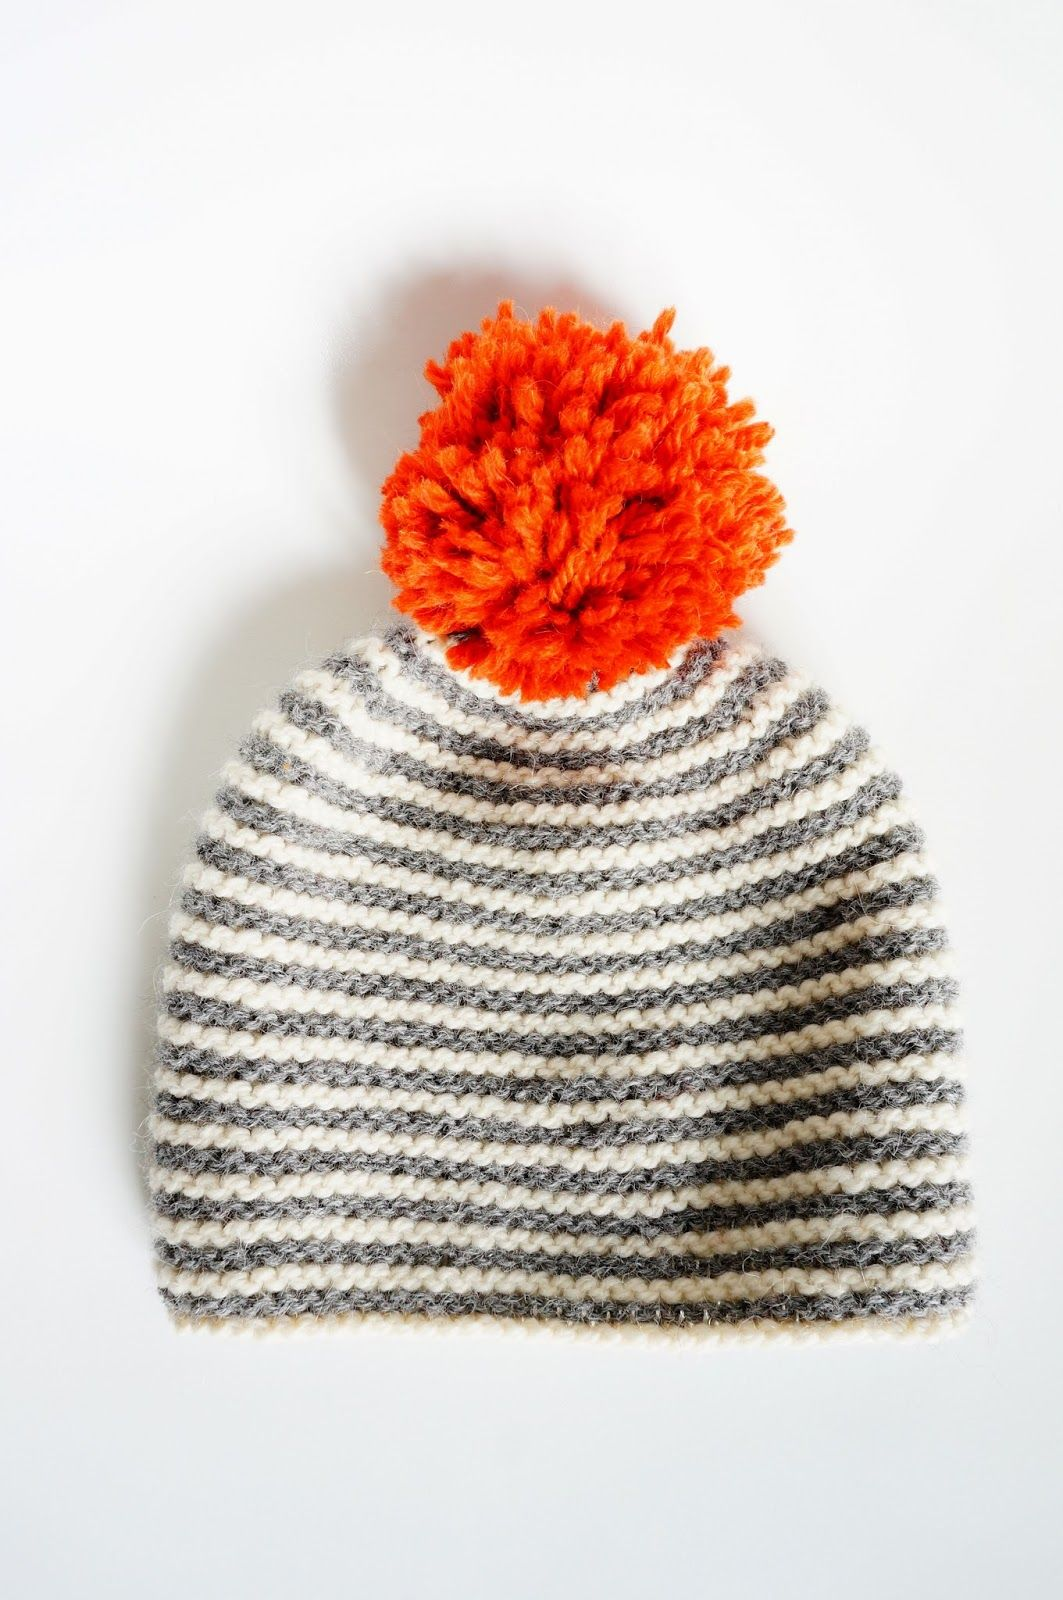 Pin de Iris_ Firefly en Created by hands | Pinterest | Gorros ...